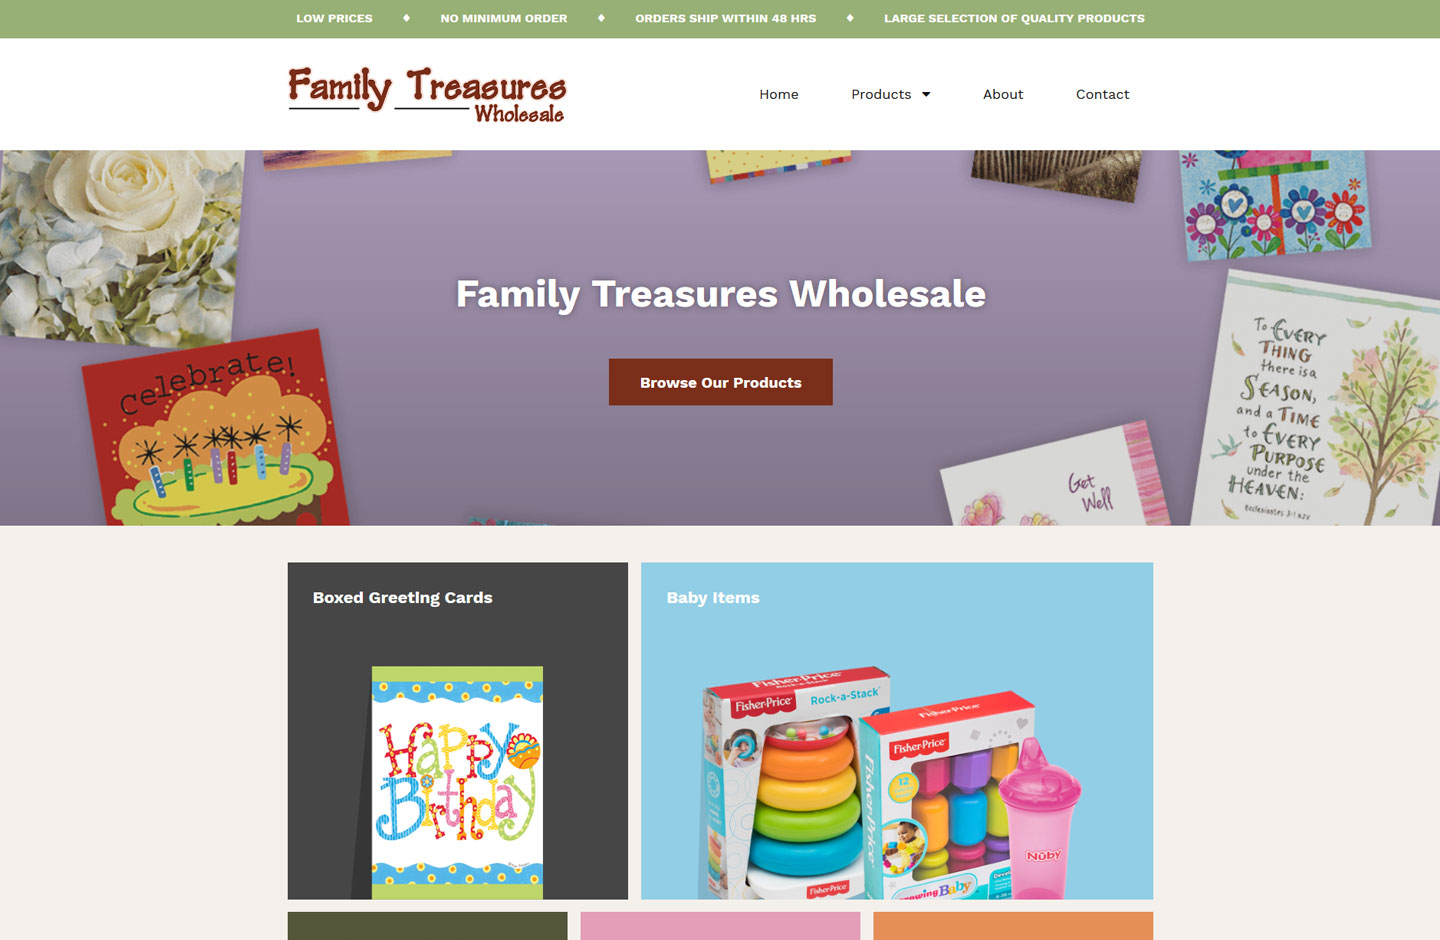 Family Treasures Wholesale